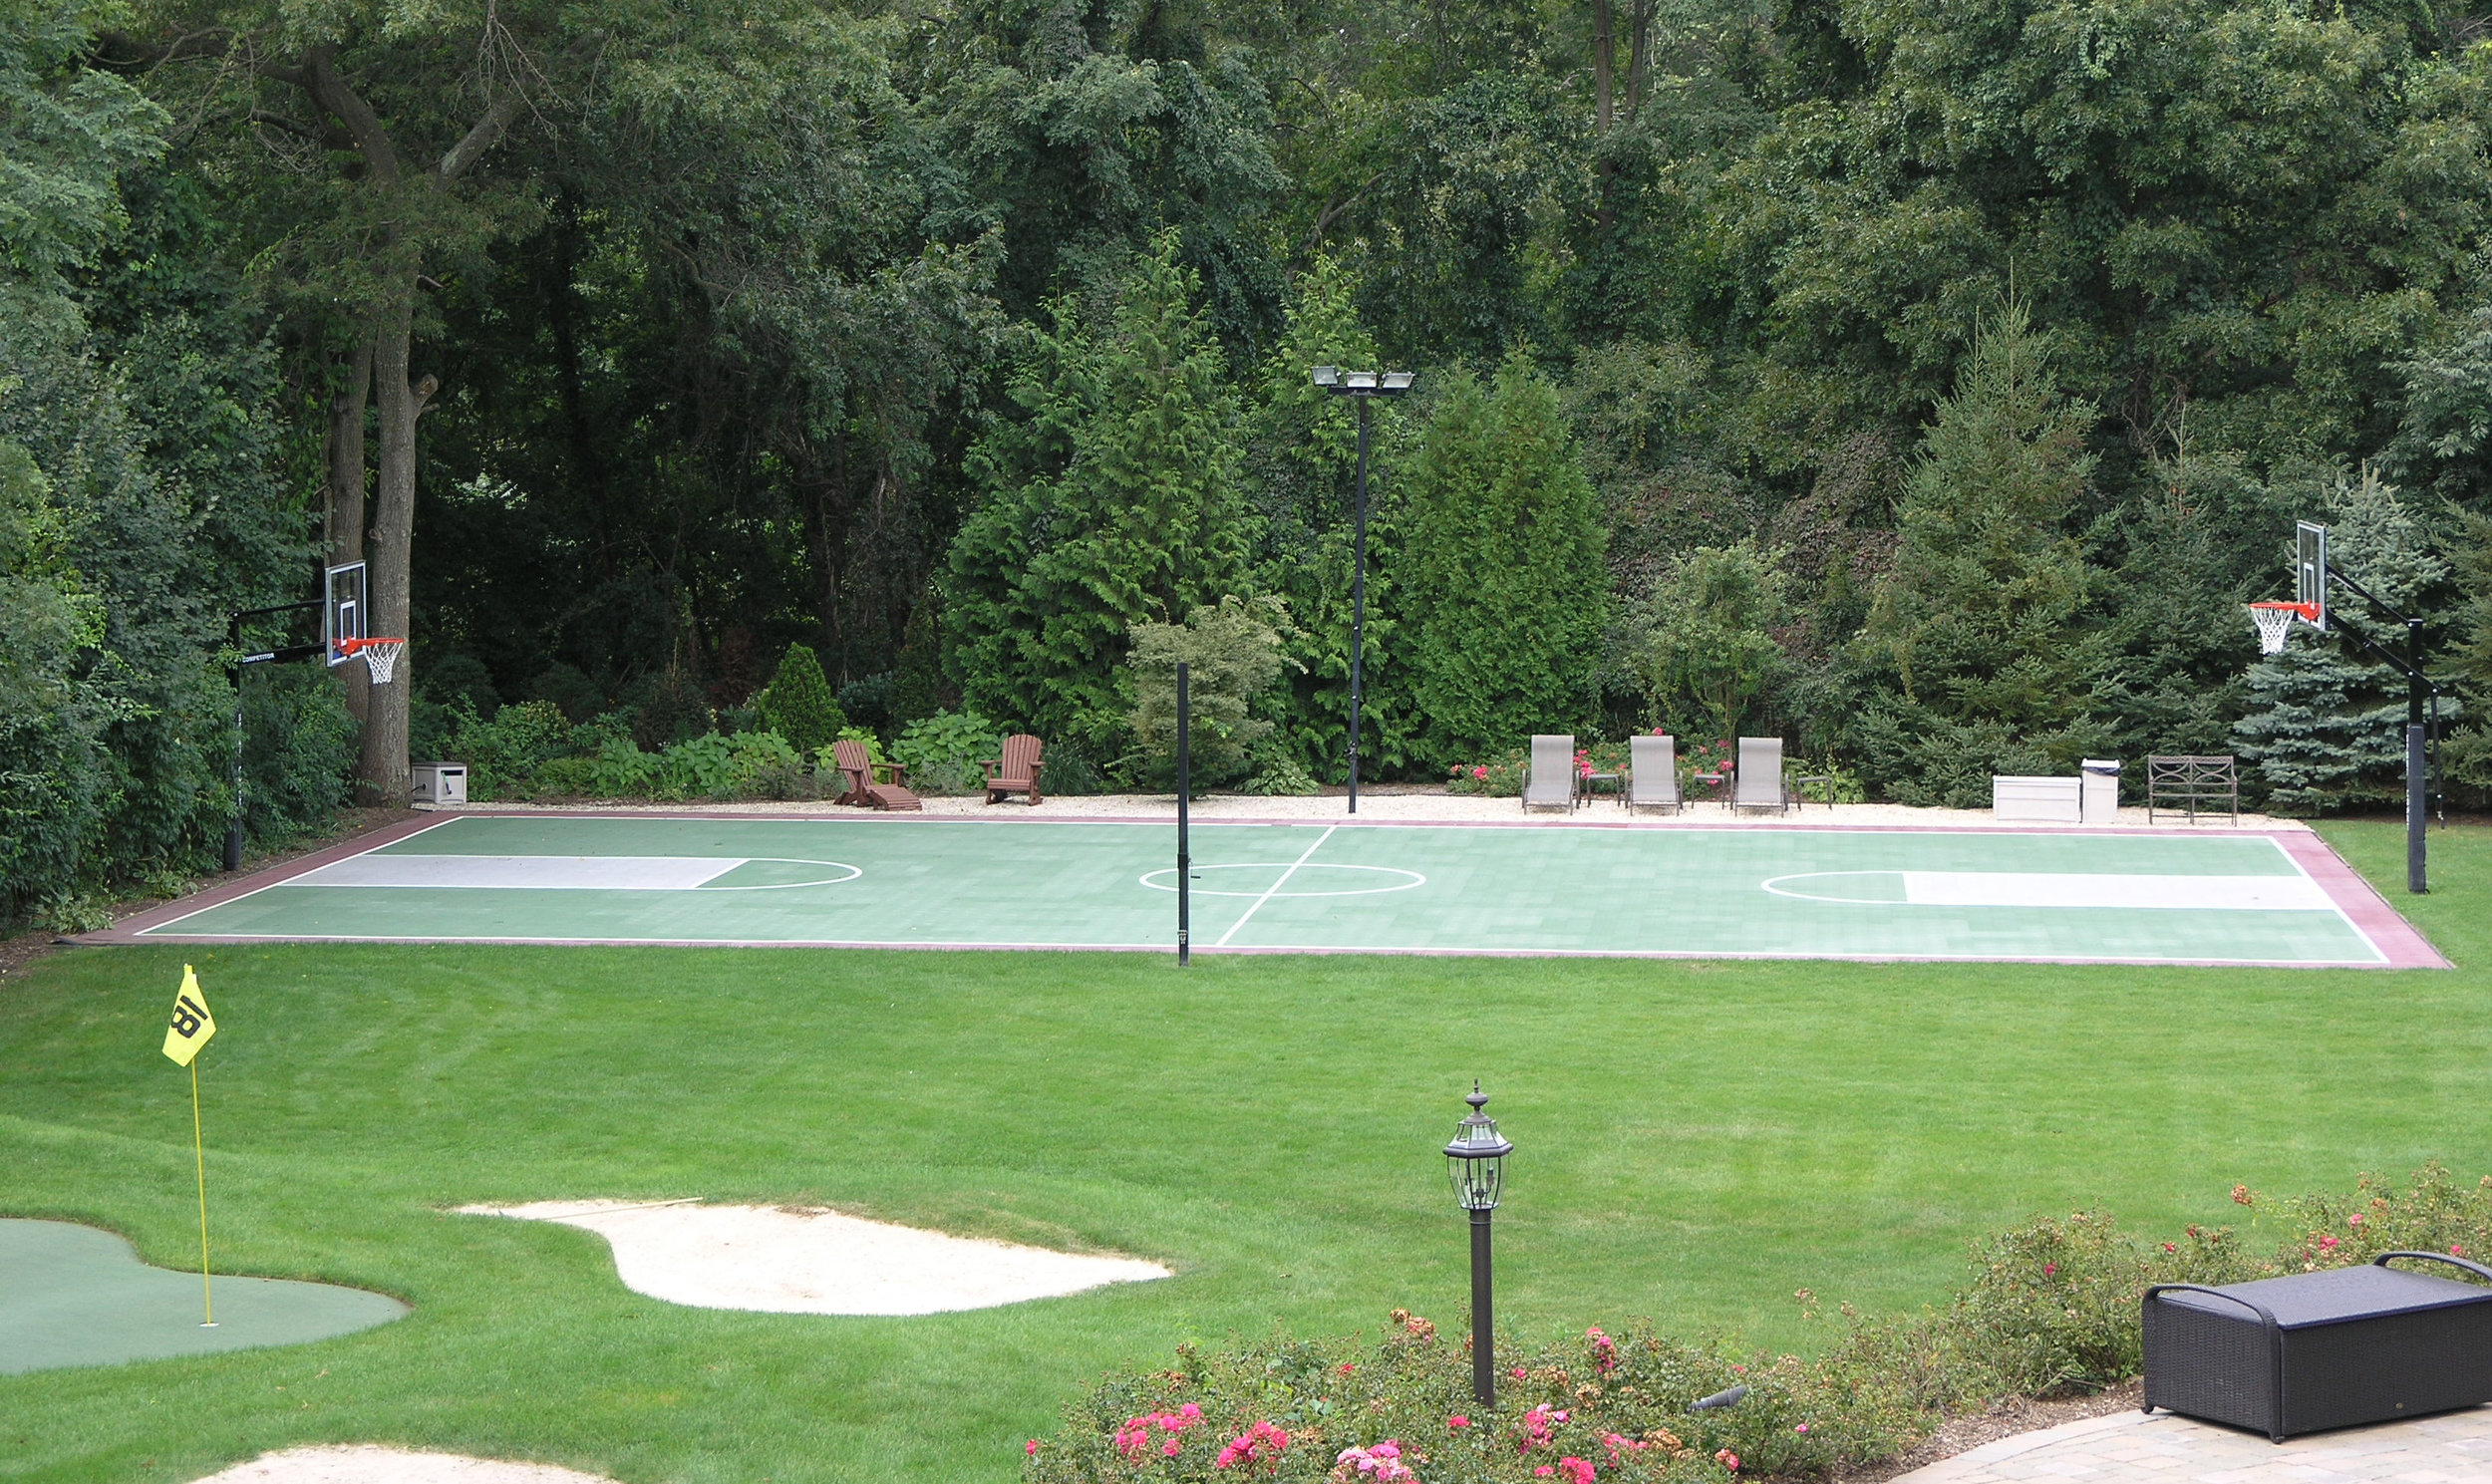 Professional basketball court landscape design company in Long Island, NY